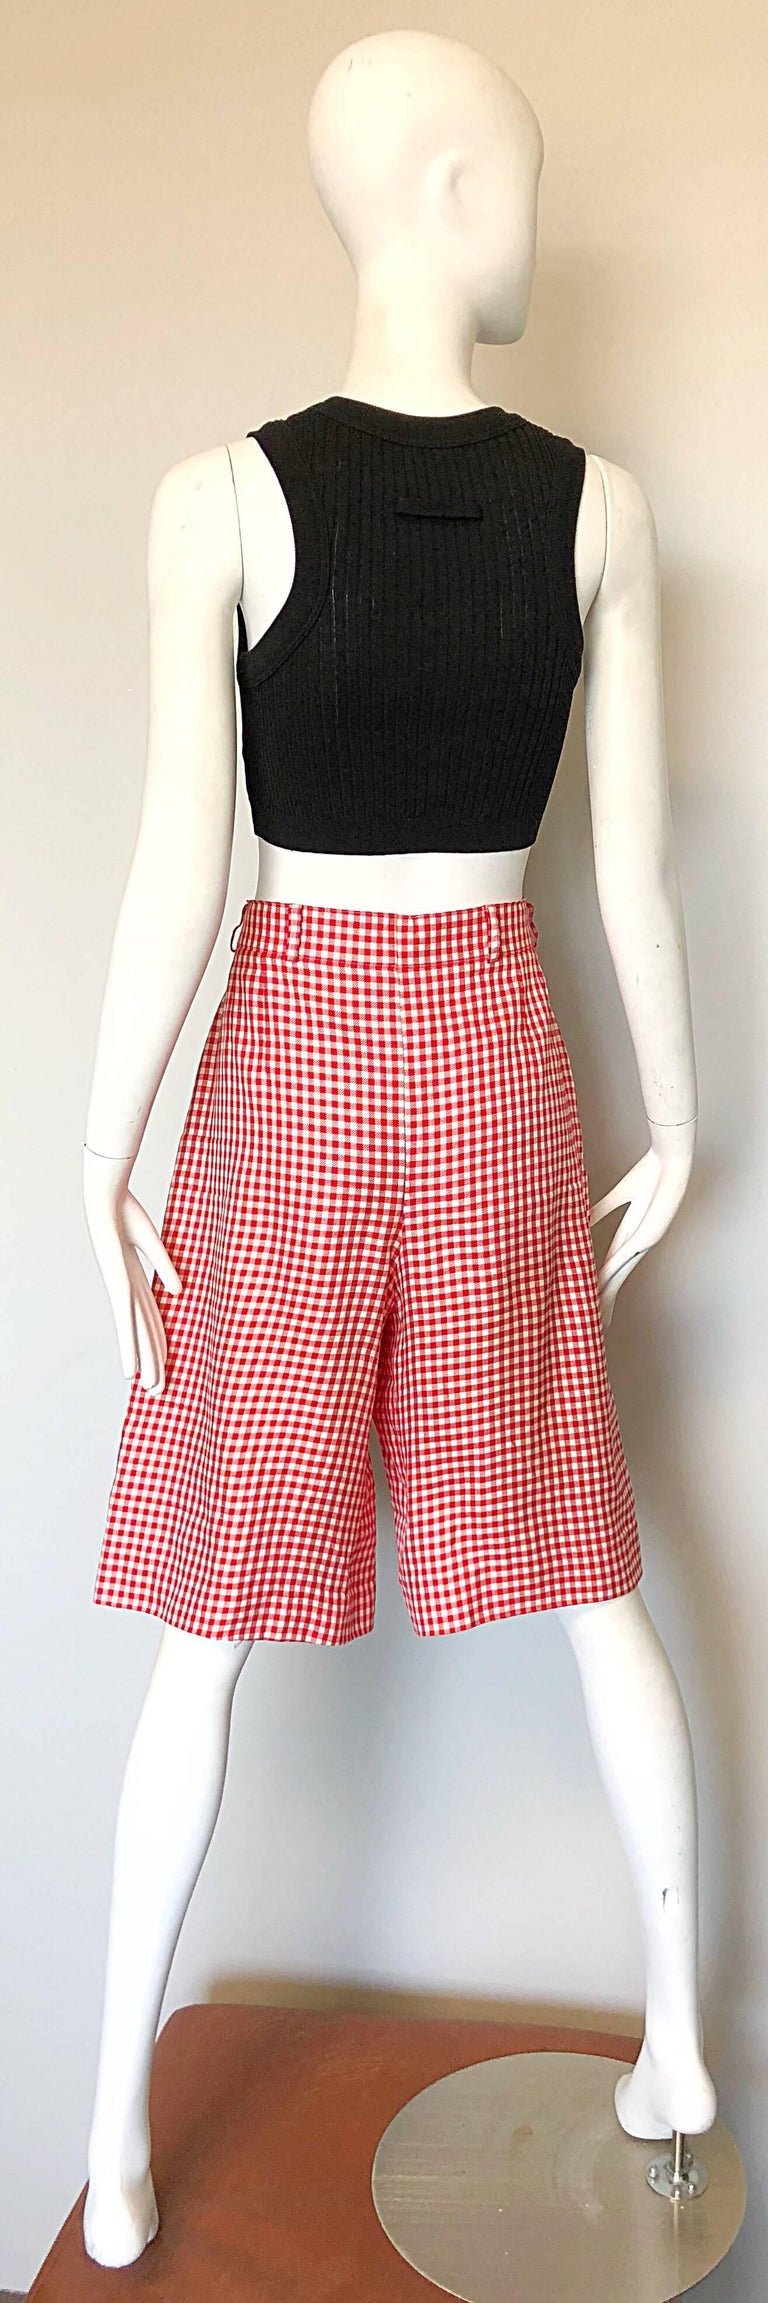 Vintage Escada Margaretha Ley Red White Nautical Gingham 1980s Culottes Shorts For Sale 1